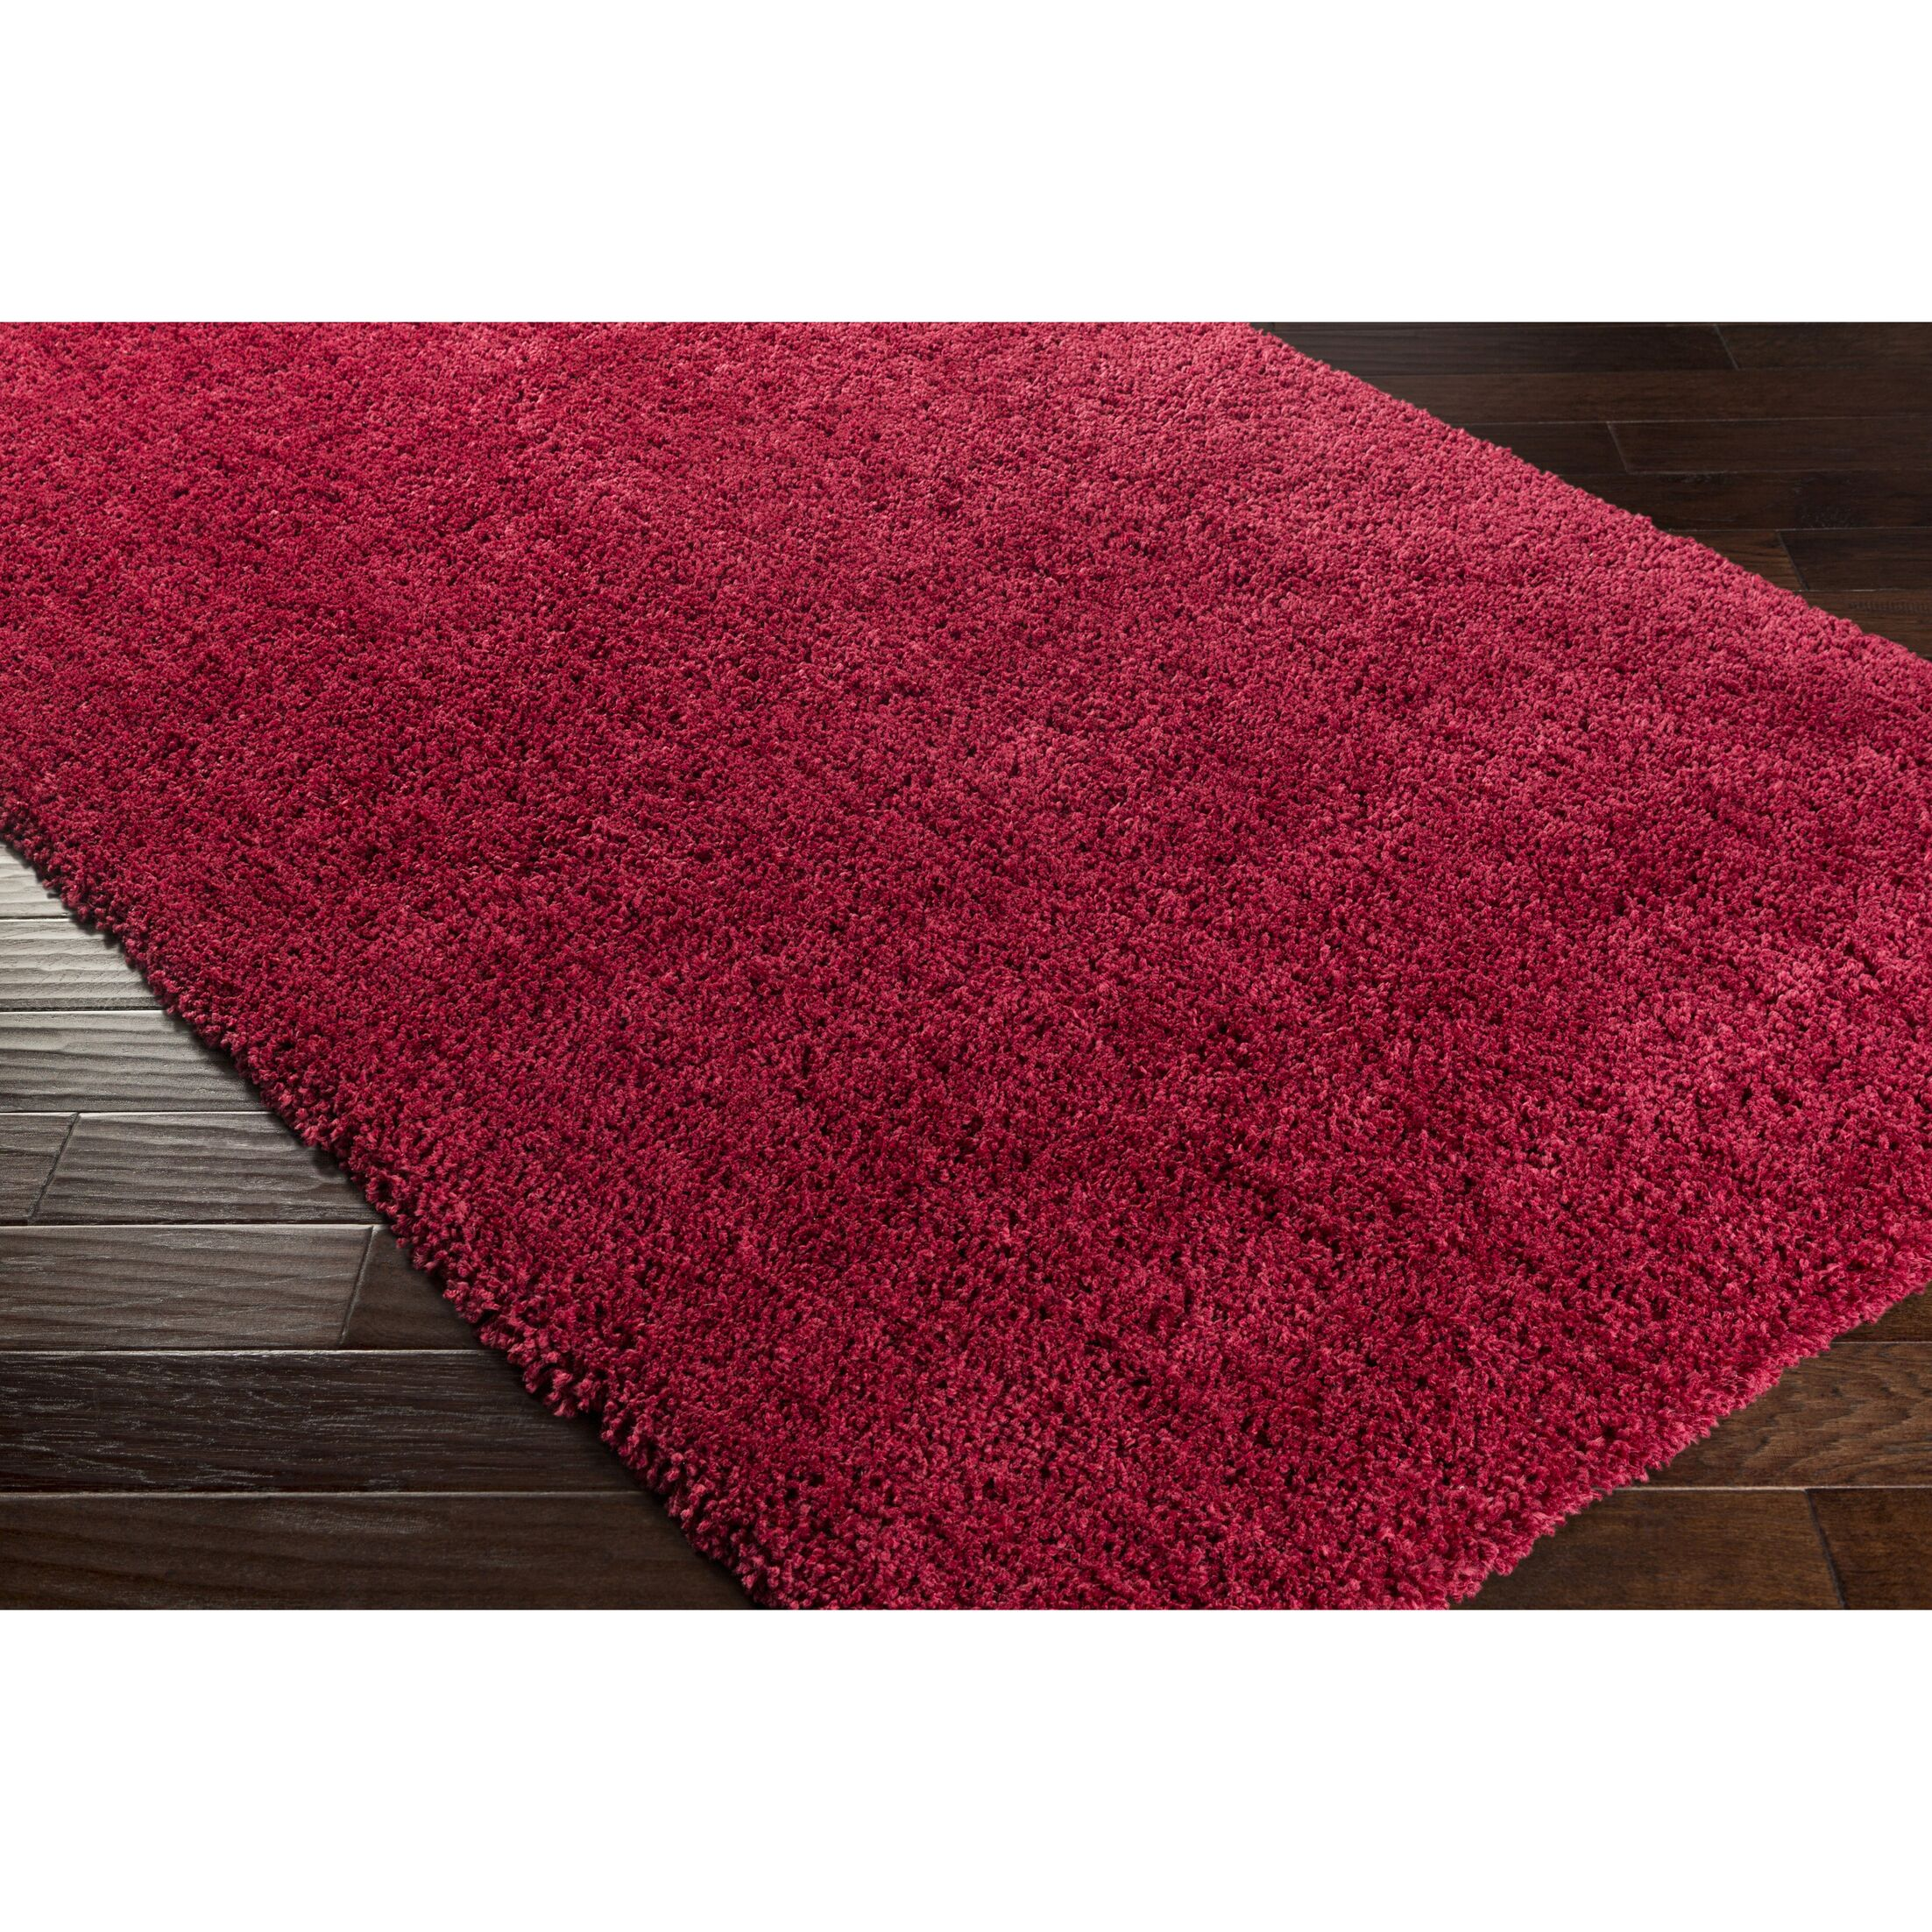 Martha Hand-Woven Red Area Rug Rug Size: Rectangle 8' x 10'6